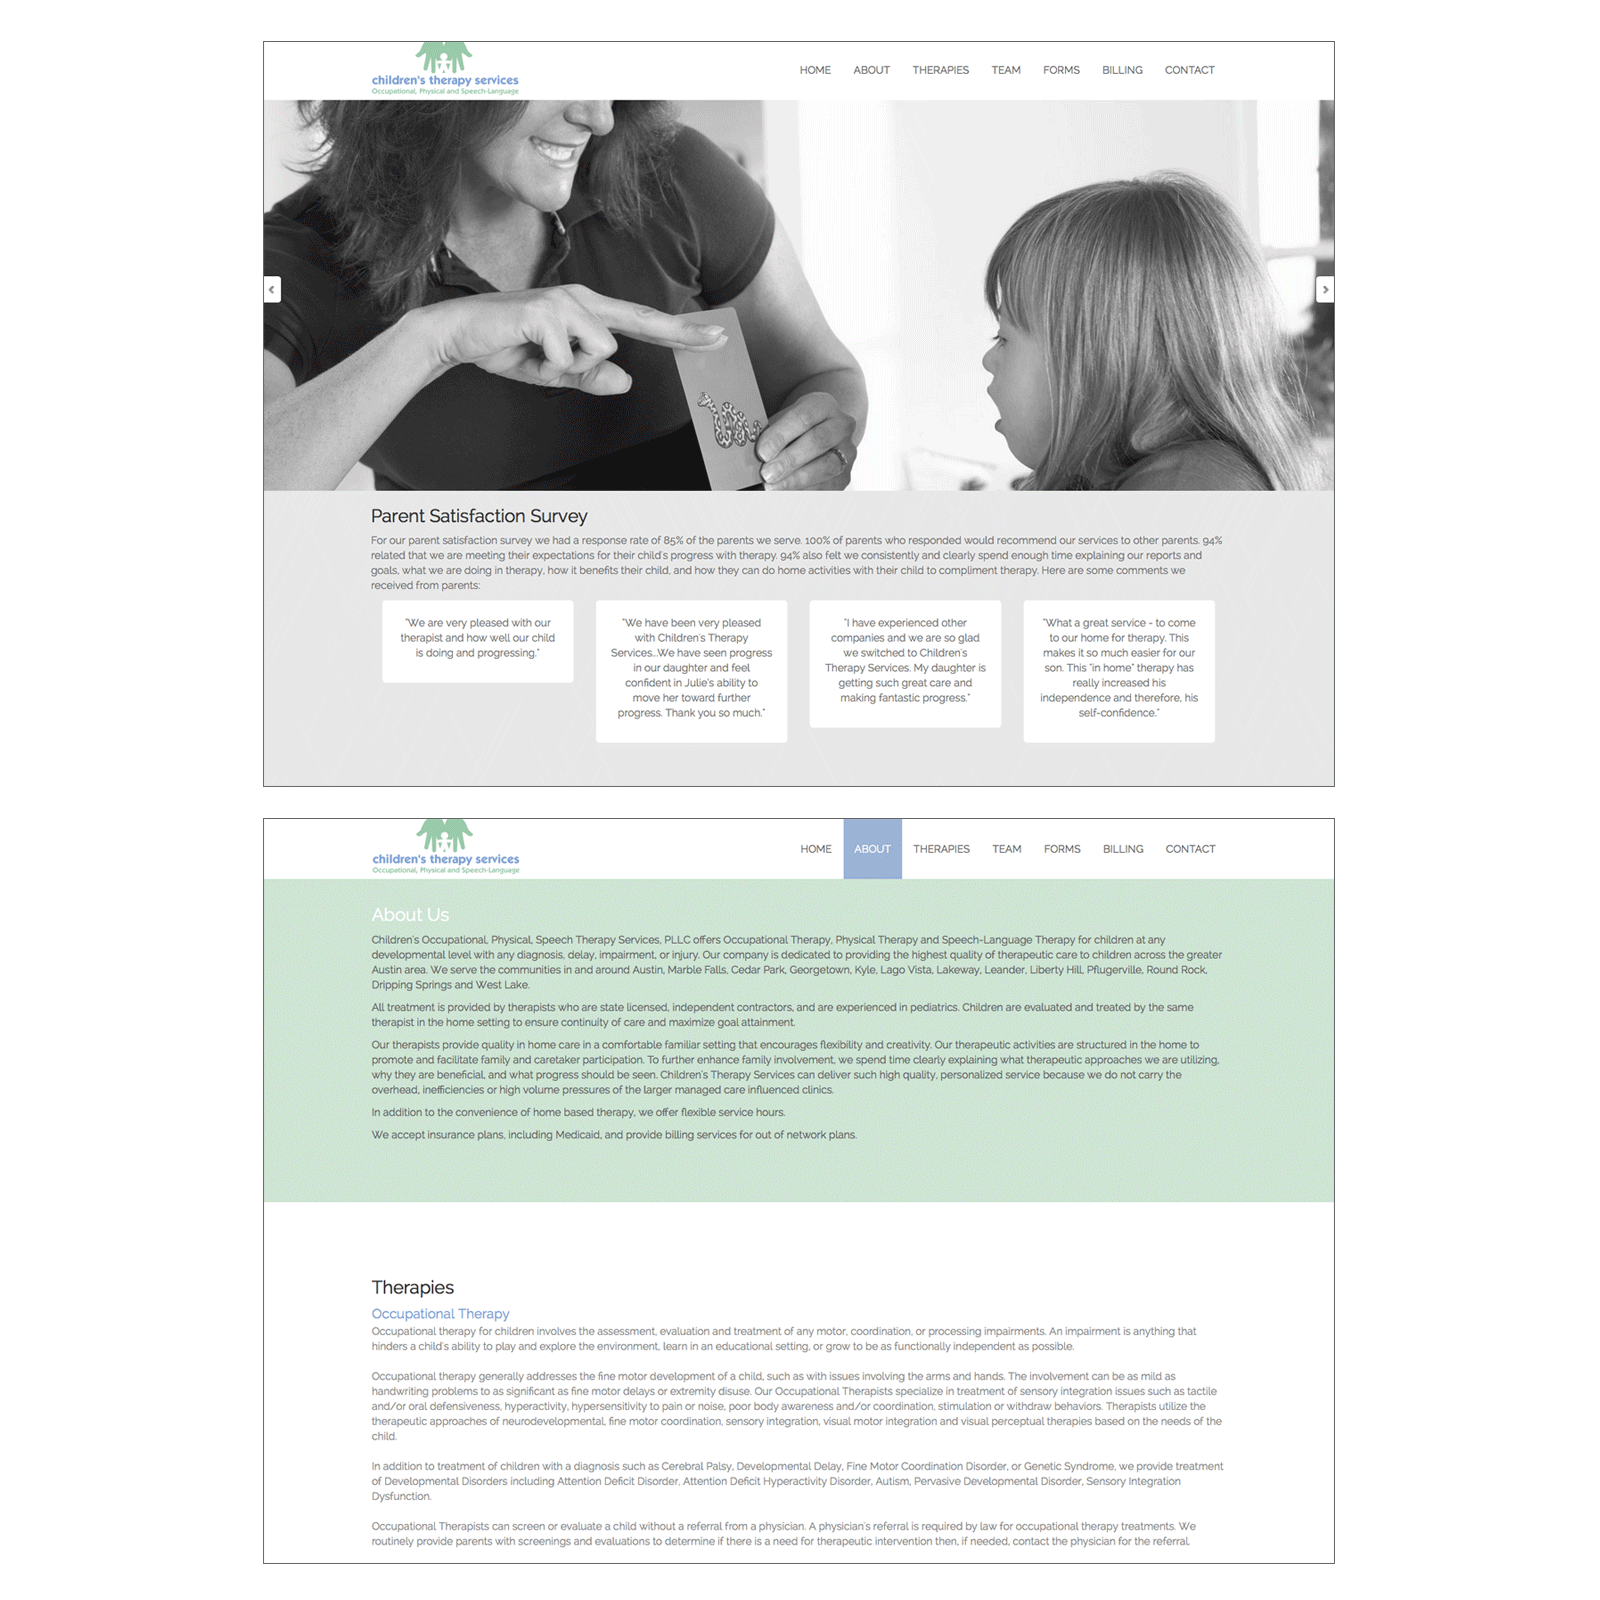 Children's Therapy Services : Website and Maintenance